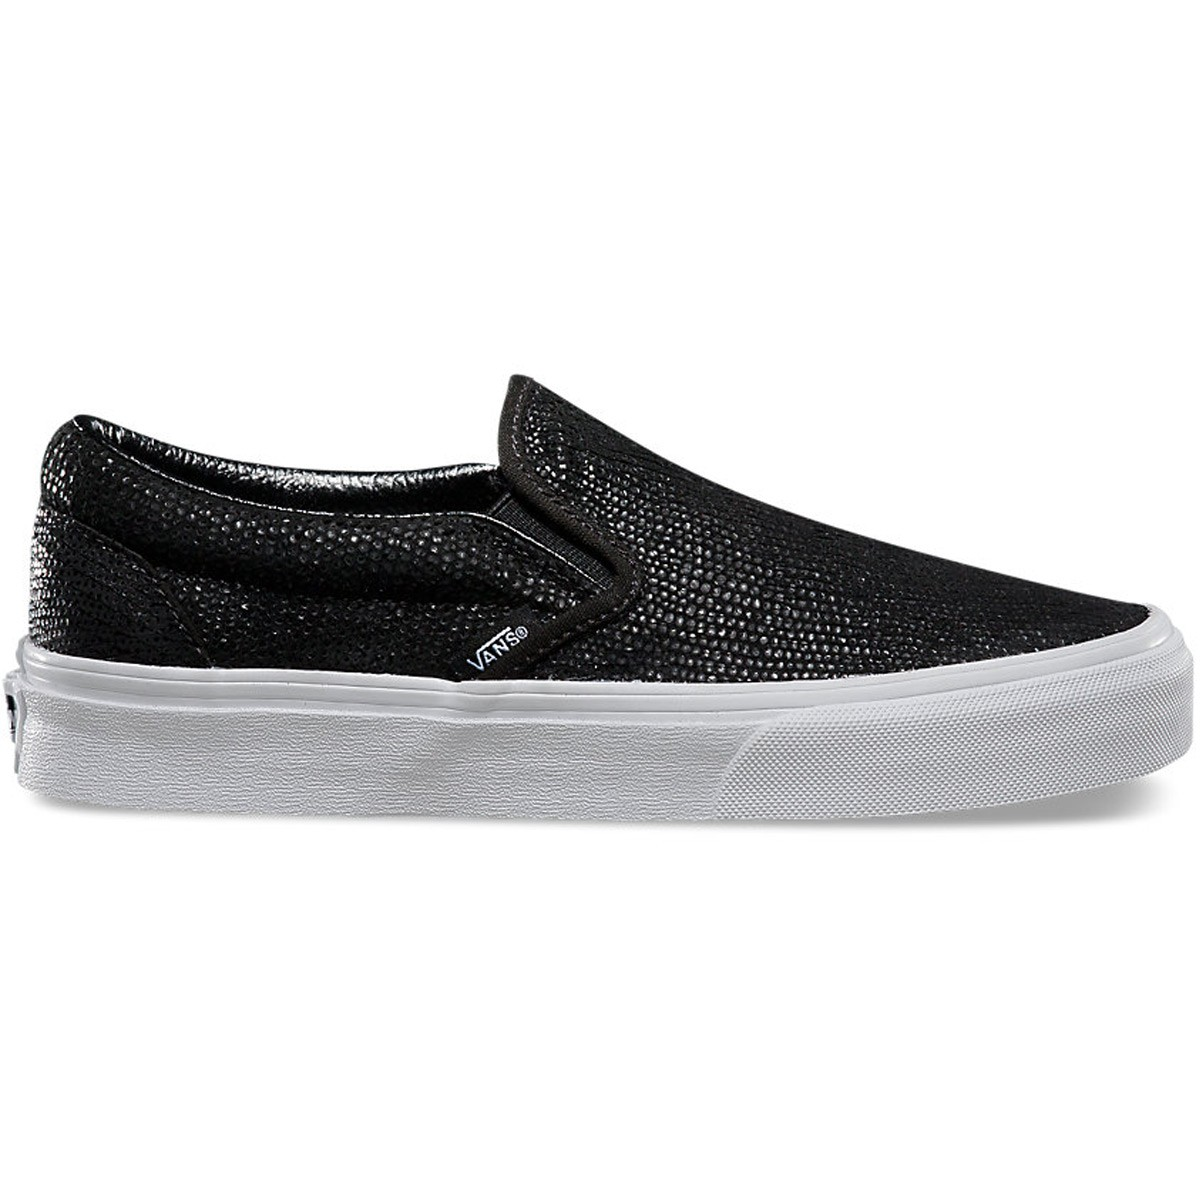 vans pebble snake slip on shoes. Black Bedroom Furniture Sets. Home Design Ideas